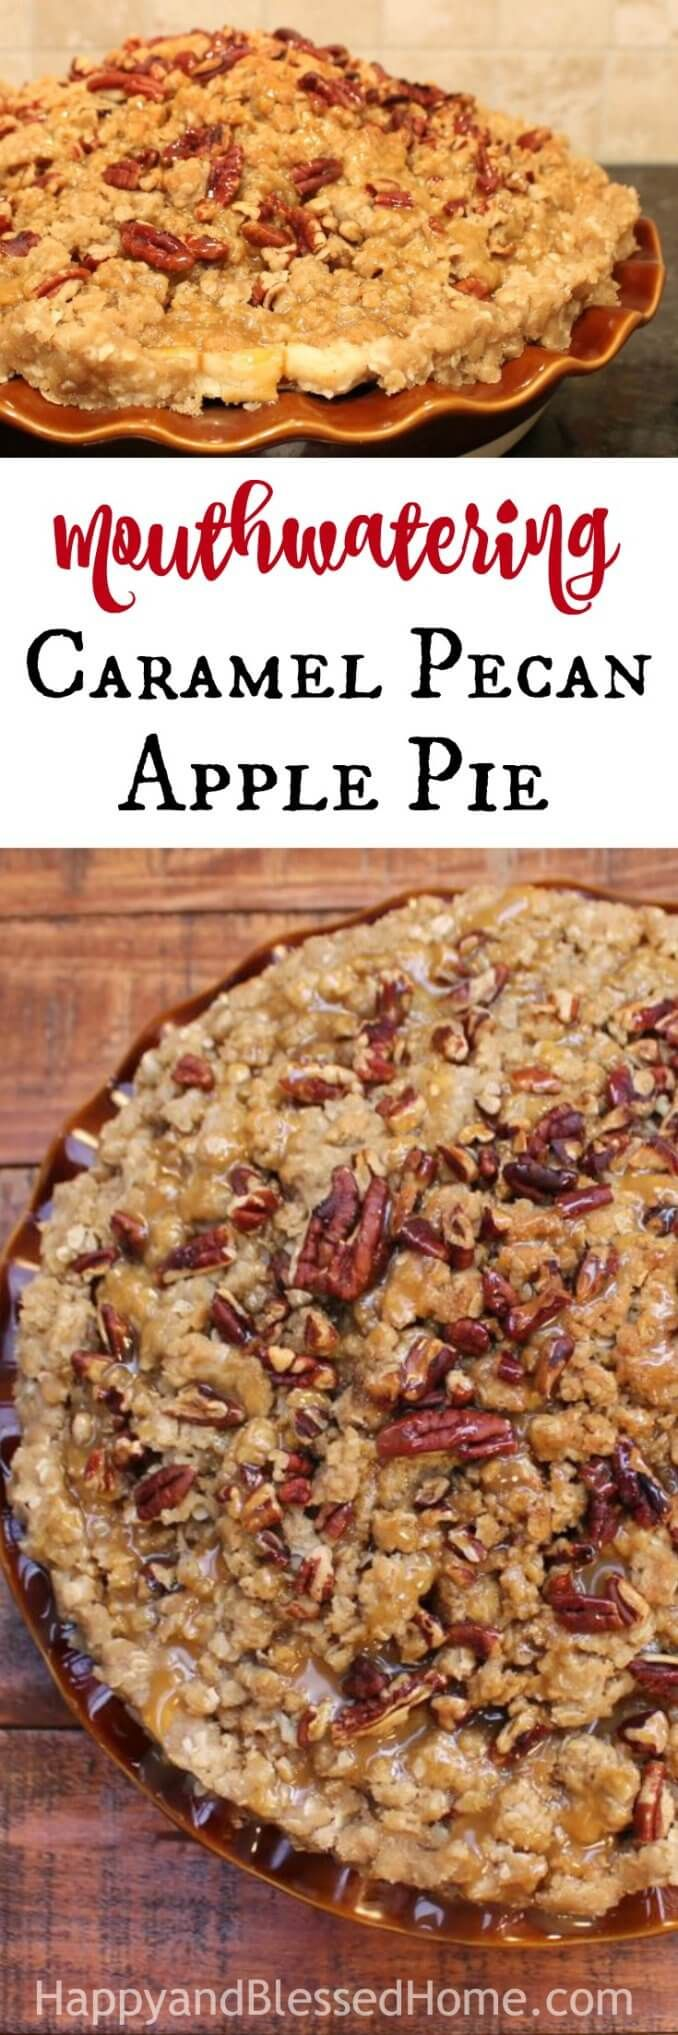 Mouthwatering Caramel Pecan Apple Pie in 9 Easy Steps - As soon as they see it, everyone will realize that THIS pie recipe cannot be found in a store. And when they taste it — well, they'll KNOW it's a homemade dessert. The WOW factor of this apple pie comes from the sheer volume of loads of peeled and sliced apples piled high enough to create a pie mountain. You bake the pie until the entire thing is juicy and warm with a crunchy topping, and then you drizzle on caramel sauce.